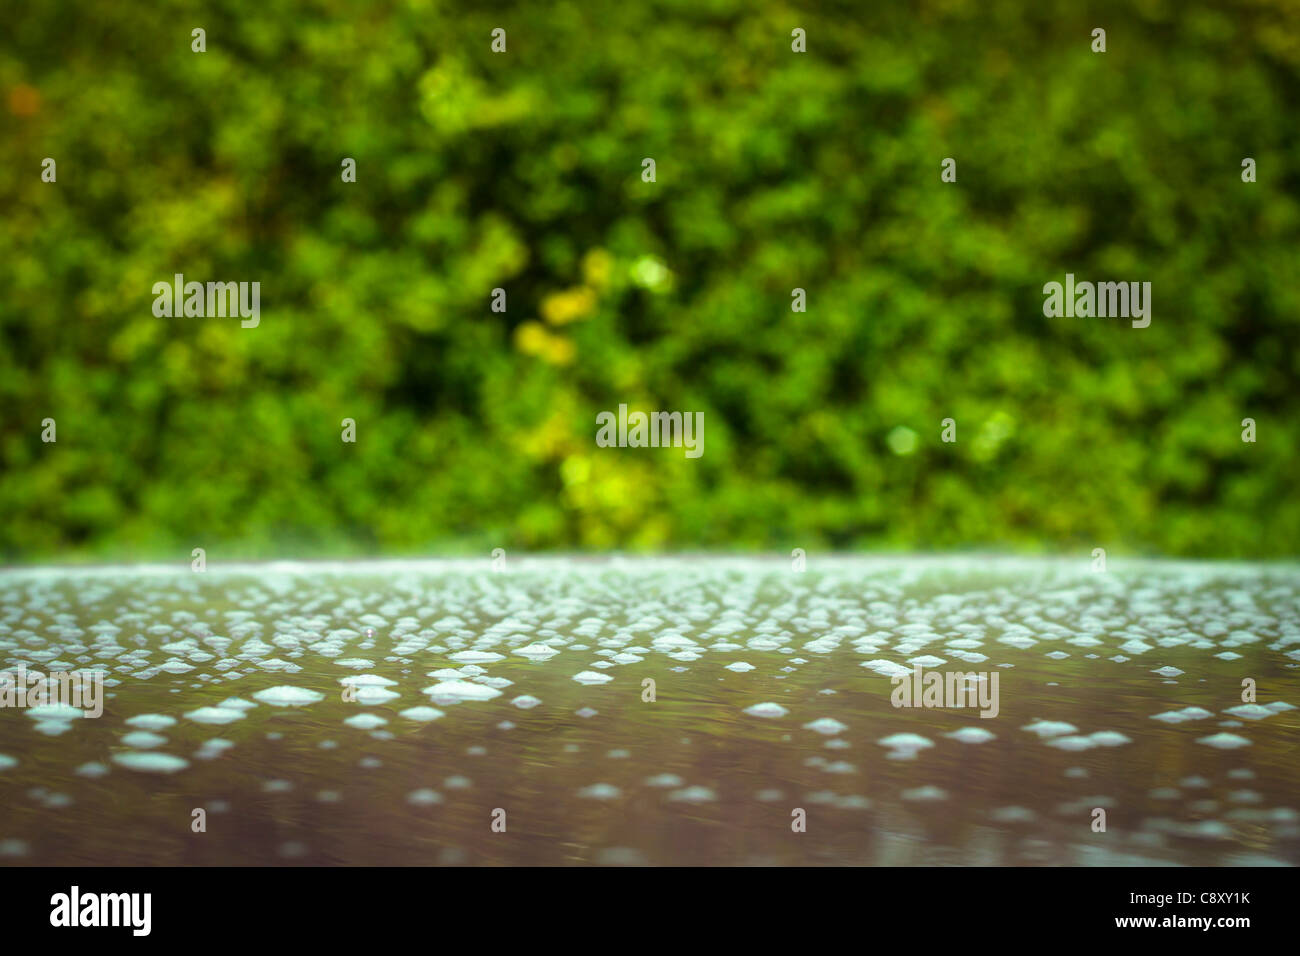 Abstract green bubbles blurred background. Stock Photo